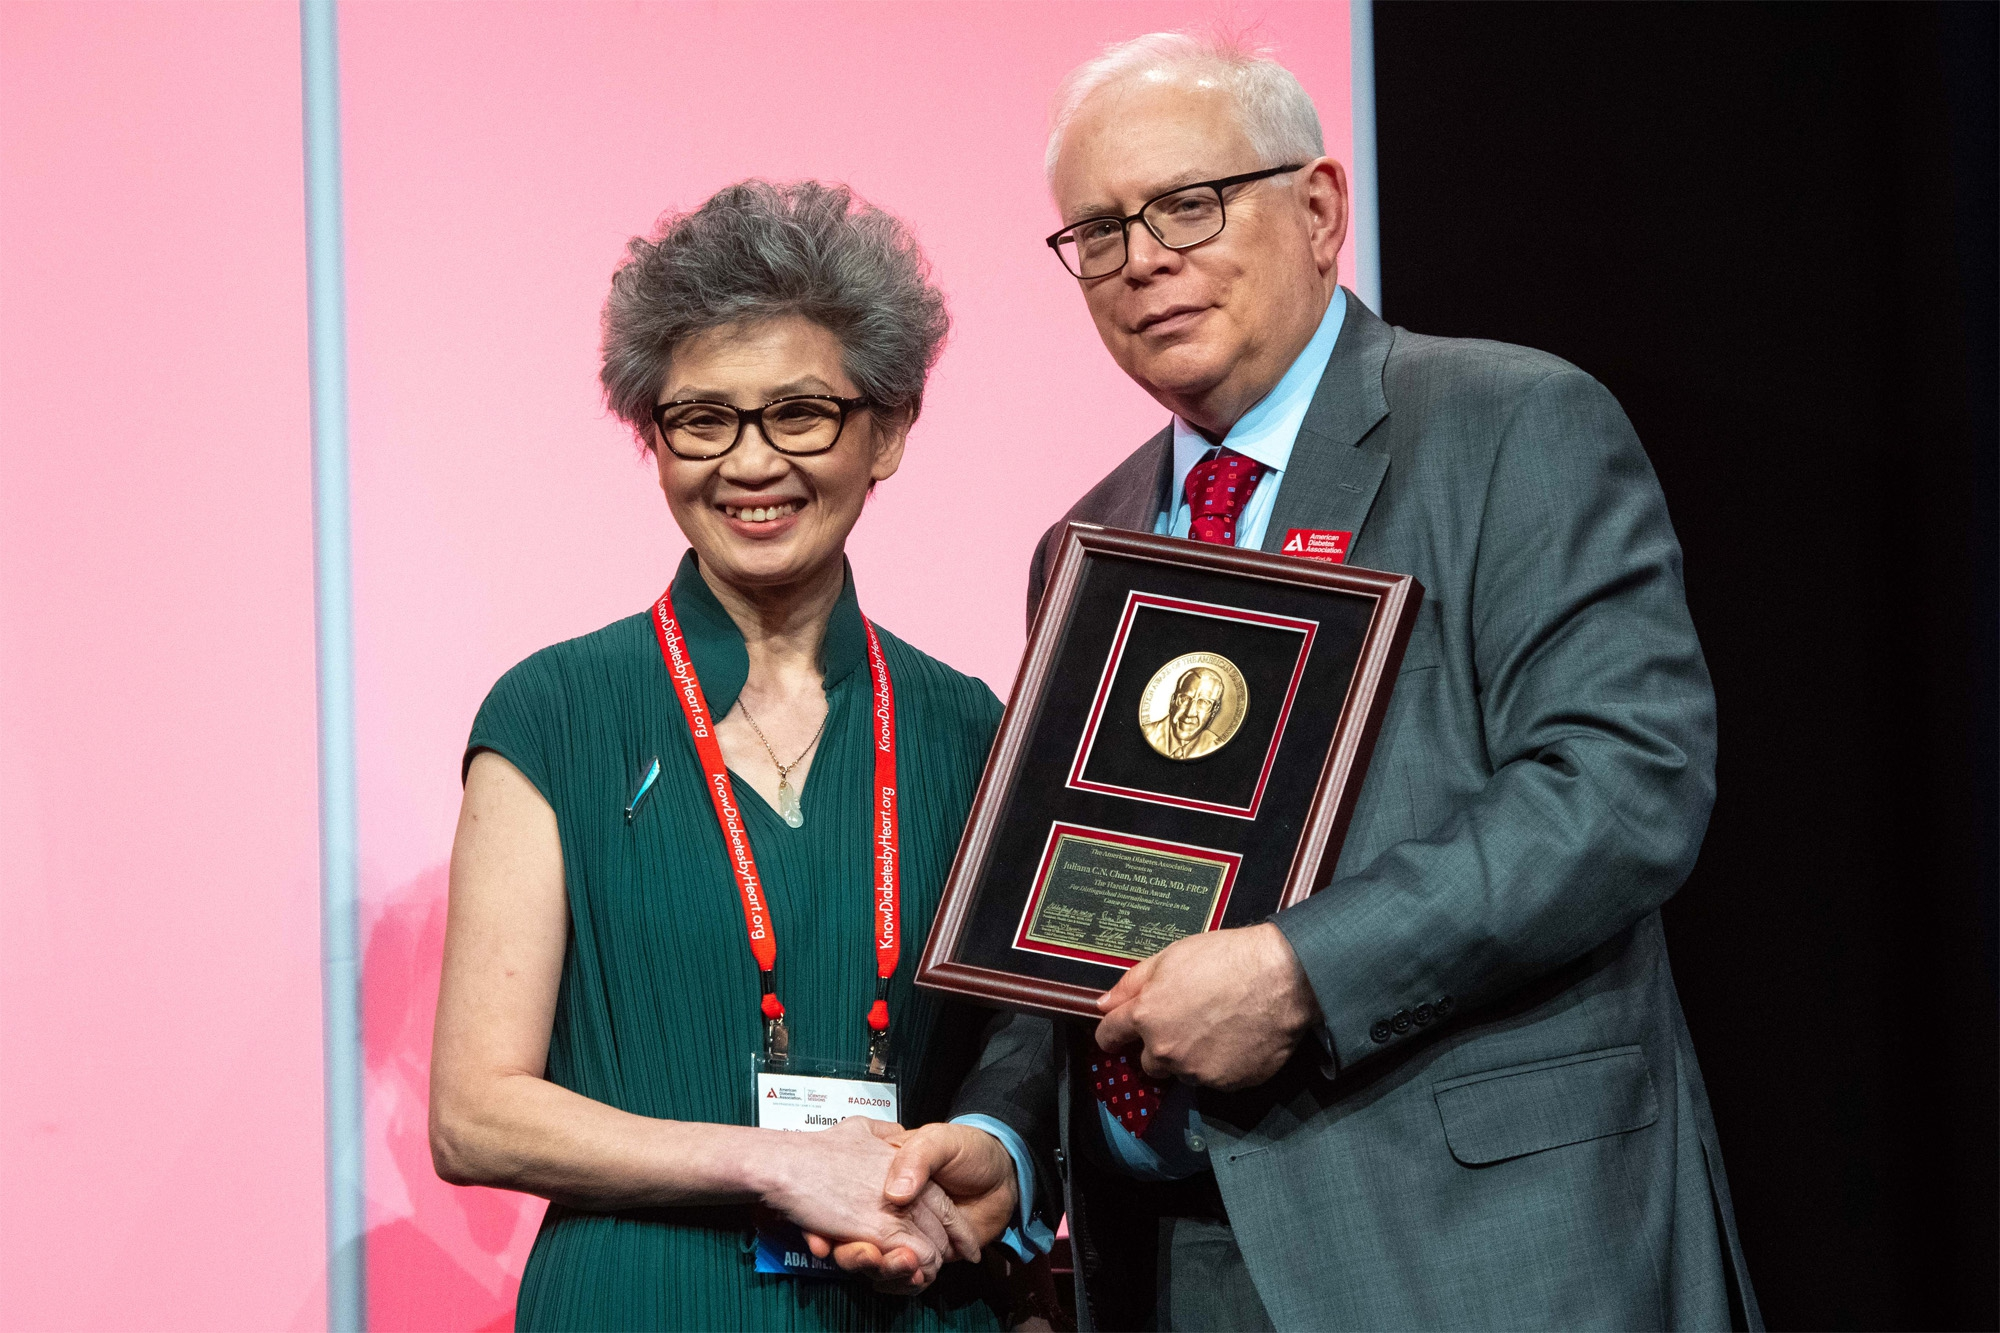 The award honours Professor Chan's outstanding performance in research, evaluation and care in the field of diabetes from a global perspective and with an international impact.